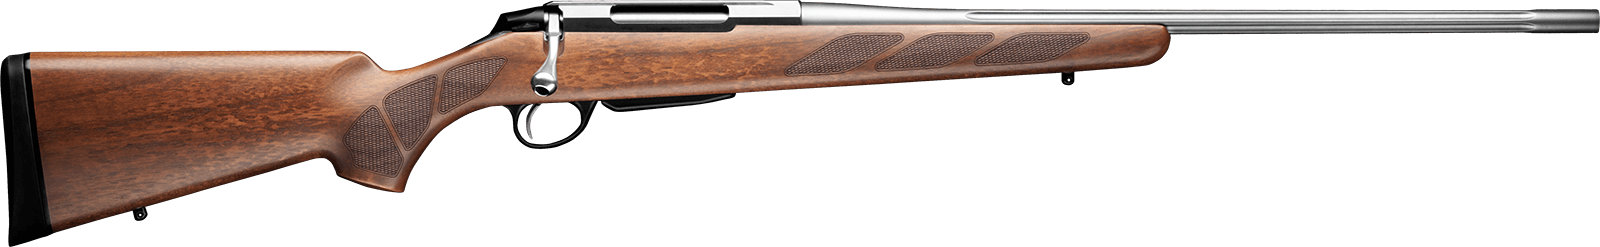 Tikka T3 HUNTER STAINLESS FLUTED BARREL